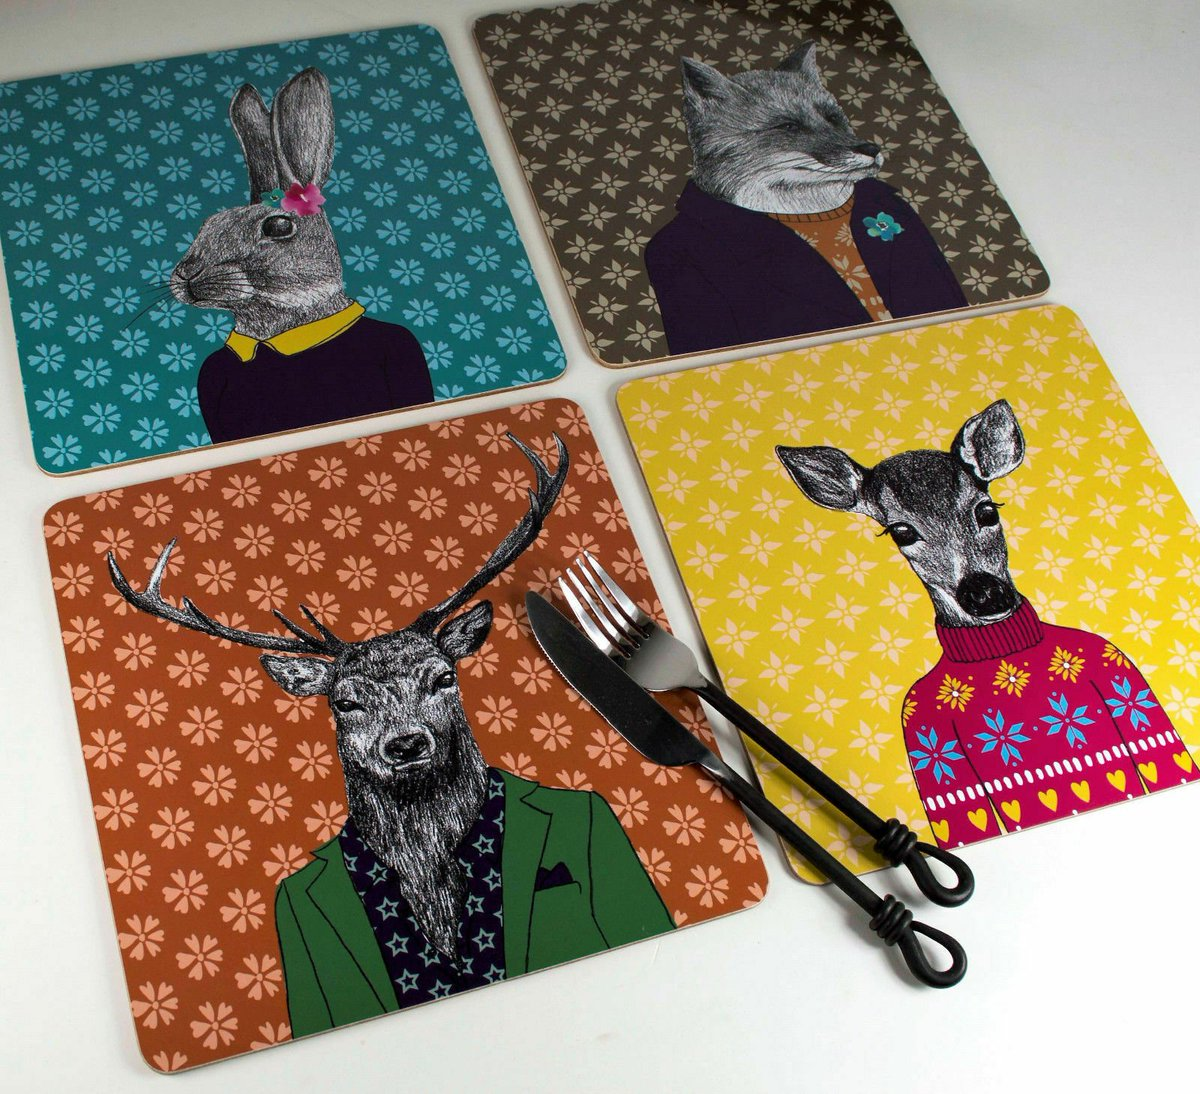 #Halloween #Competition    #FOLLOW & #RETWEEET this post to #win   Set of 4 AFTER DARK Woodland Creatures SQUARE Cork-Backed PLACEMATS Table Mats  https://www. ebay.co.uk/itm/3527755111 76  …   #free #giveaways #WinItWednesday #freebietuesday #Freebiefriday #MondayMotivation #SundayMotivation <br>http://pic.twitter.com/kdkPoNY4Cn